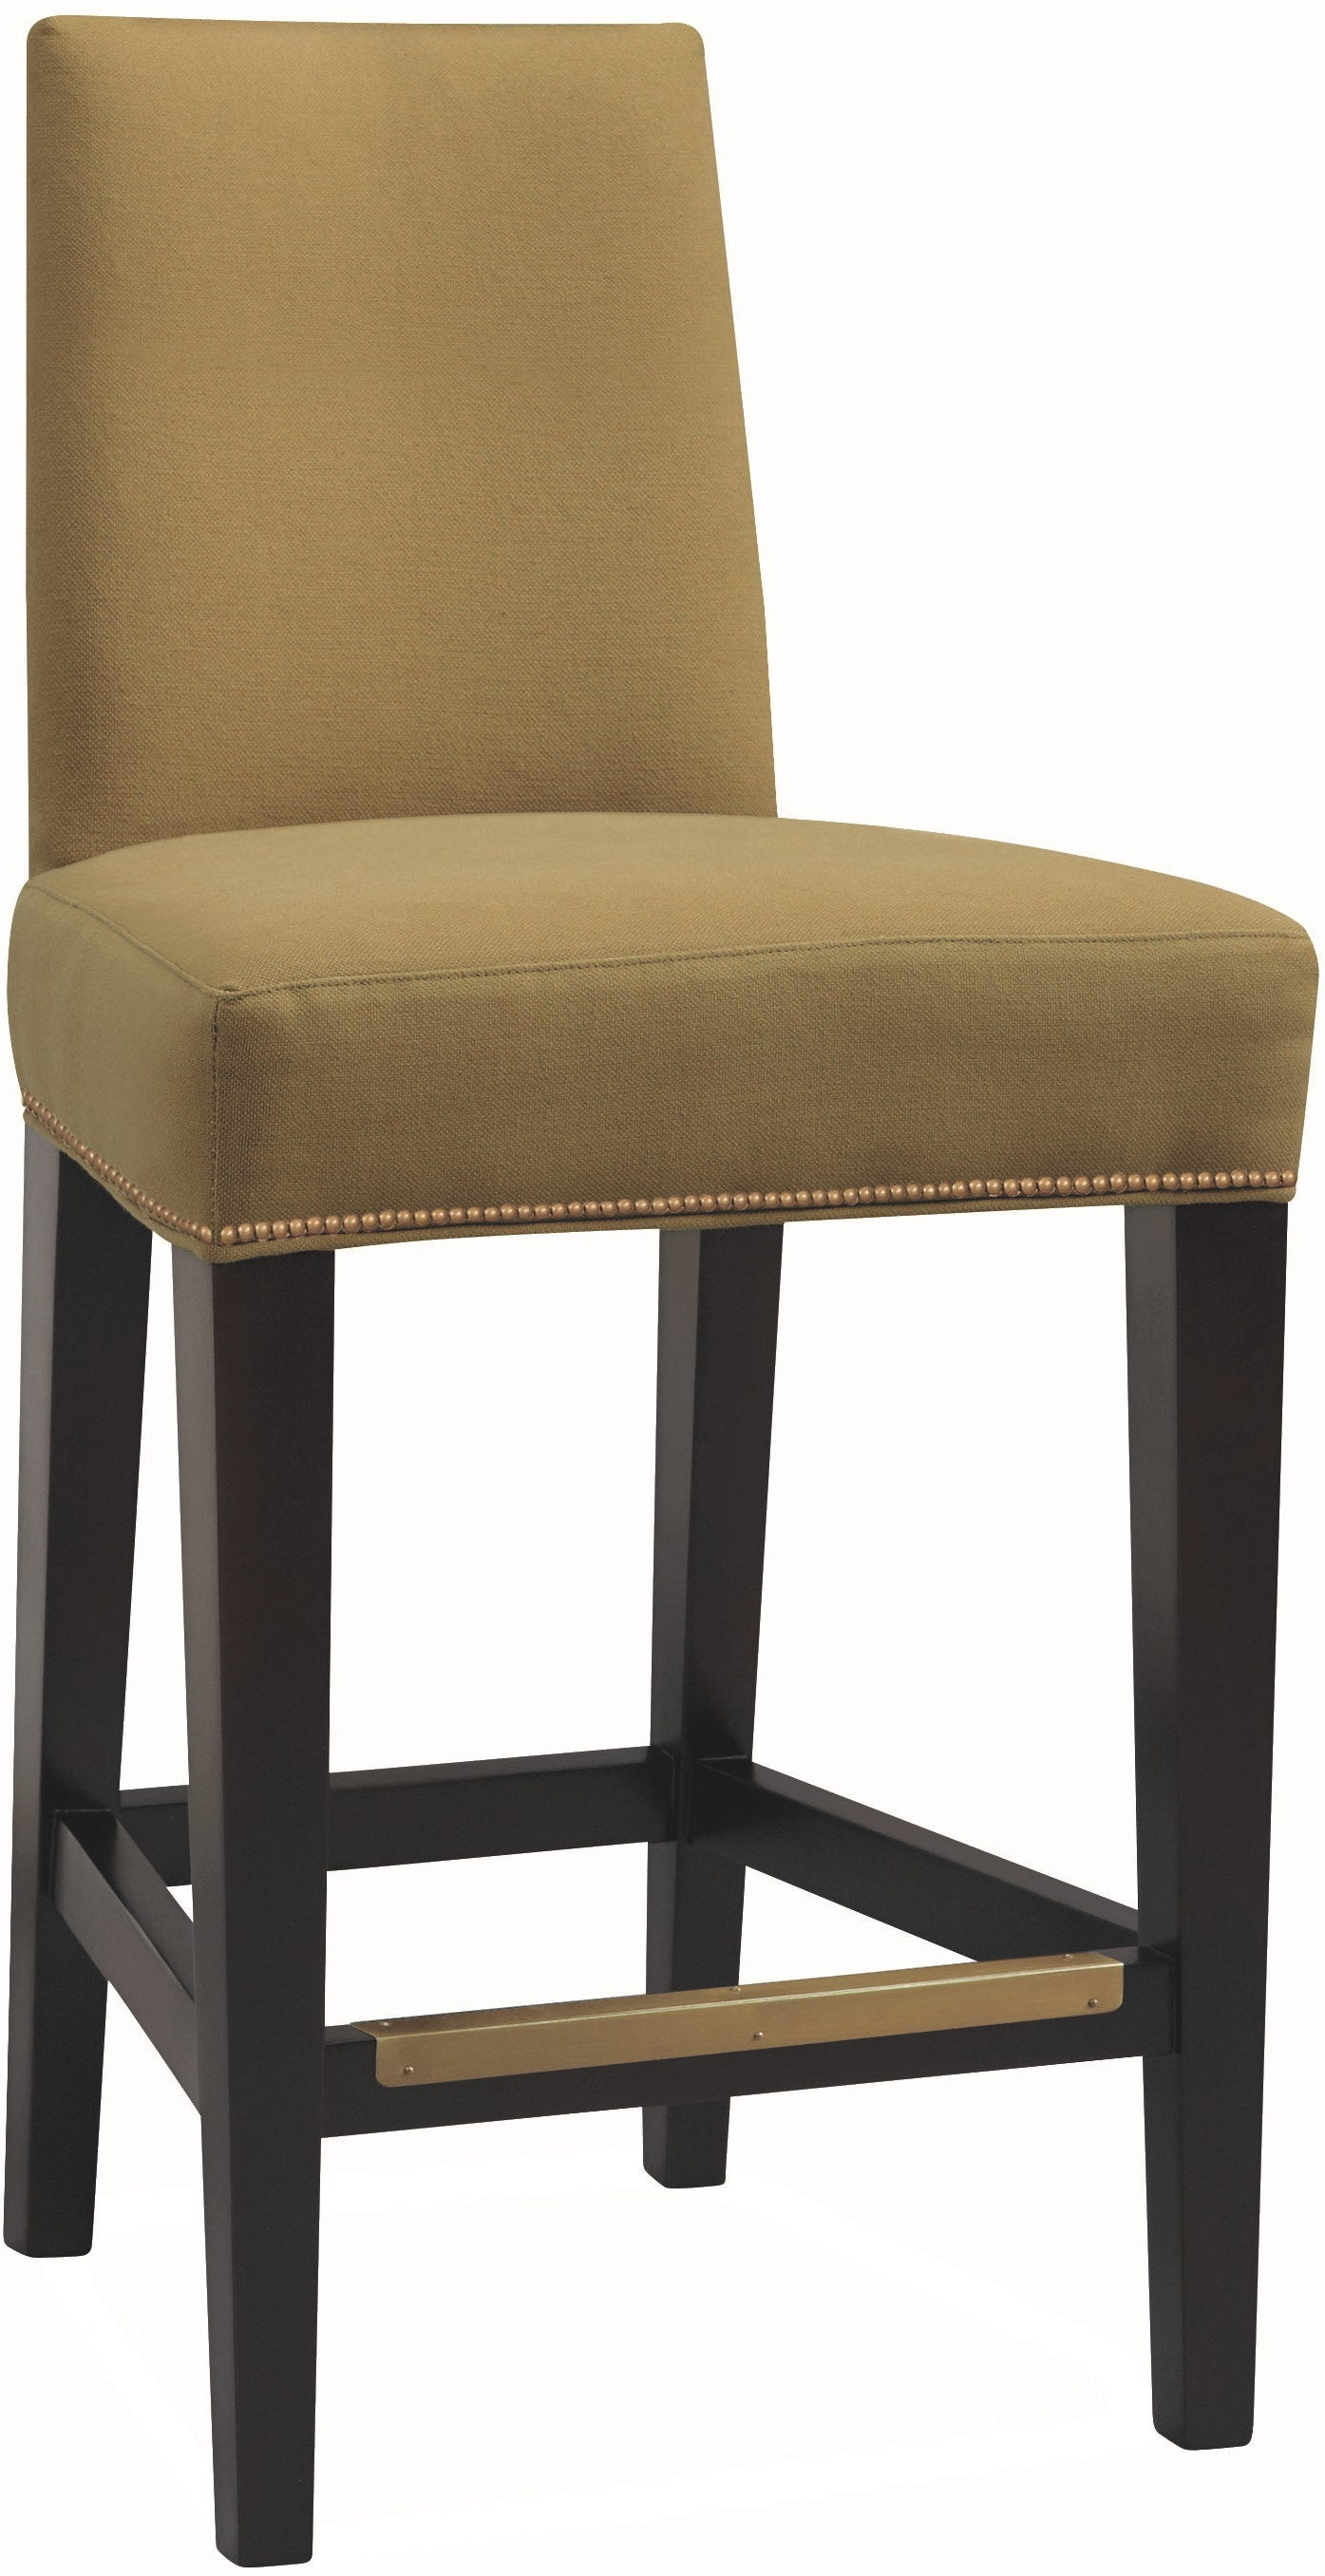 Lee Industries Bar And Game Room Counter Stool 5473 51